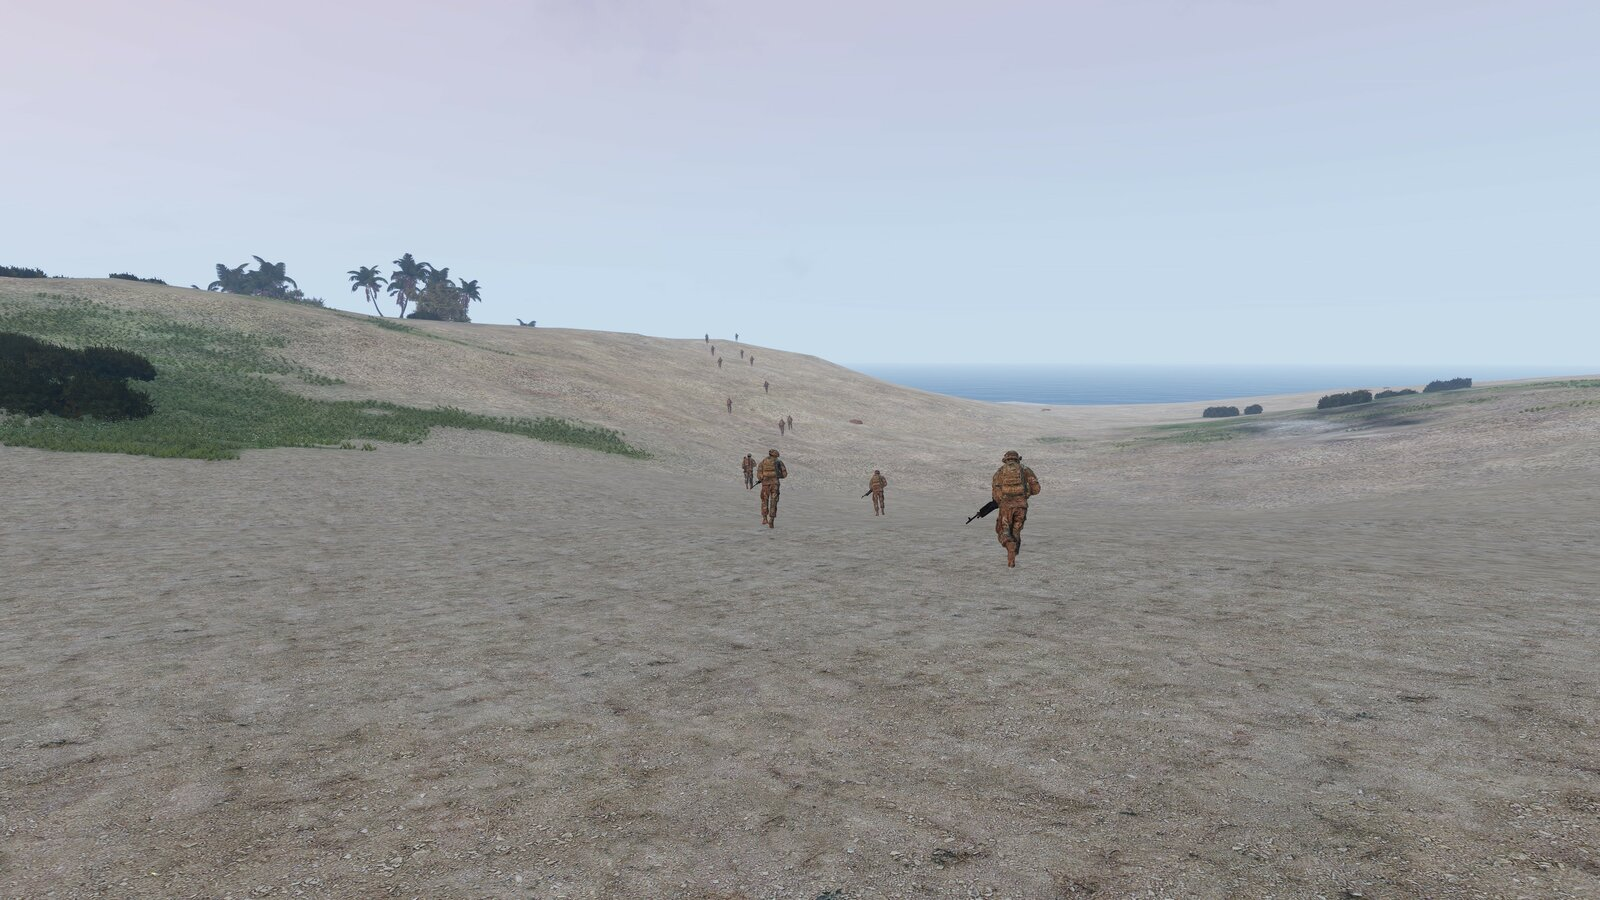 [CO45+1] Operation Husky